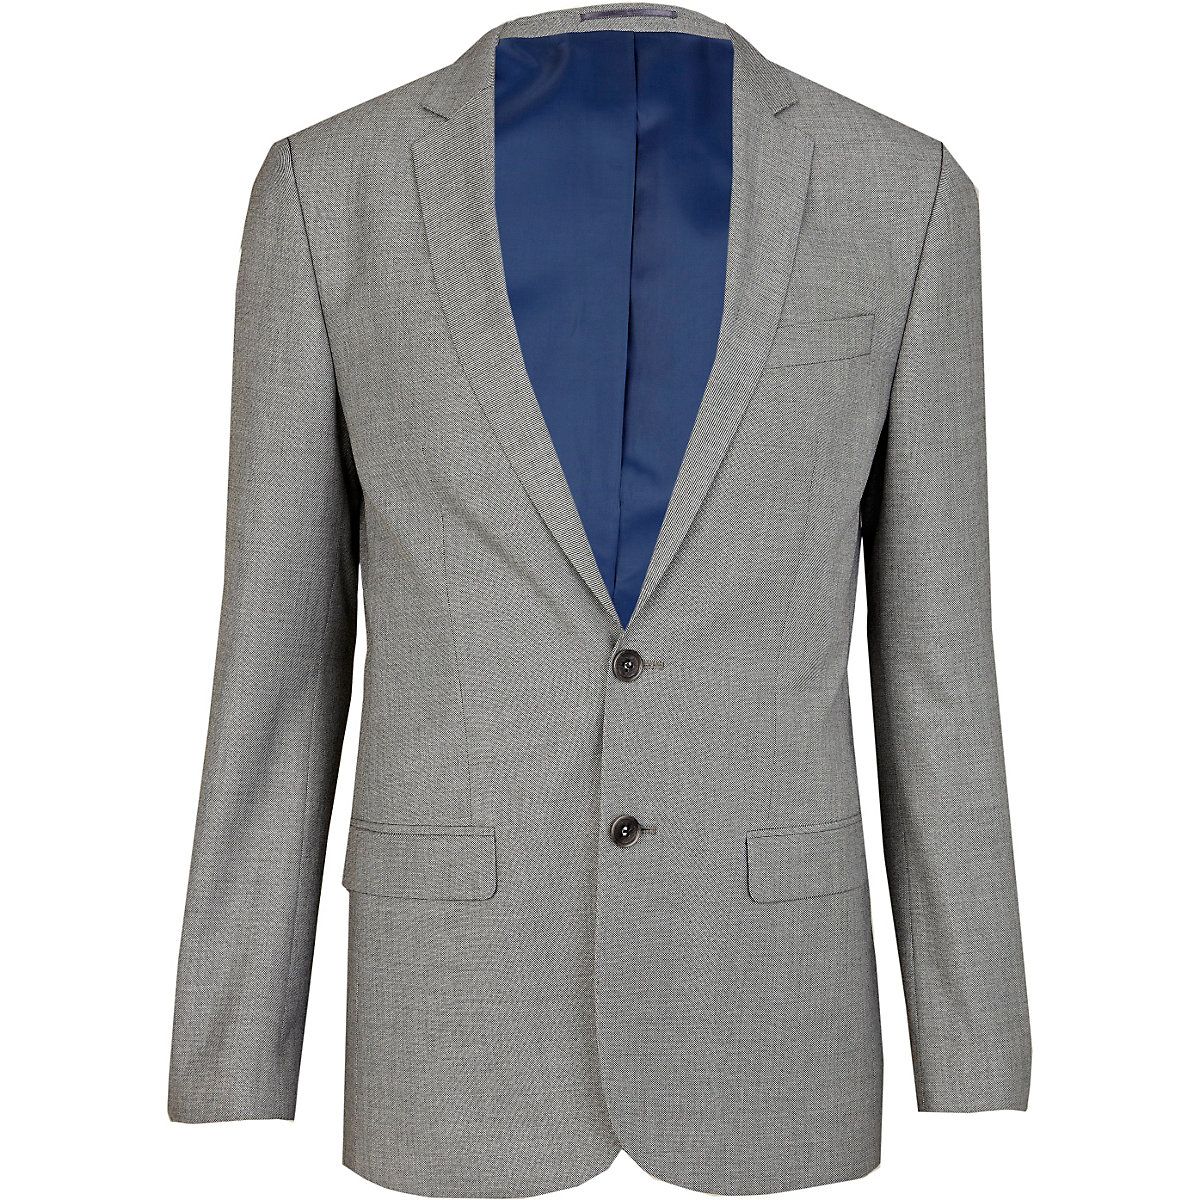 Light grey skinny suit jacket